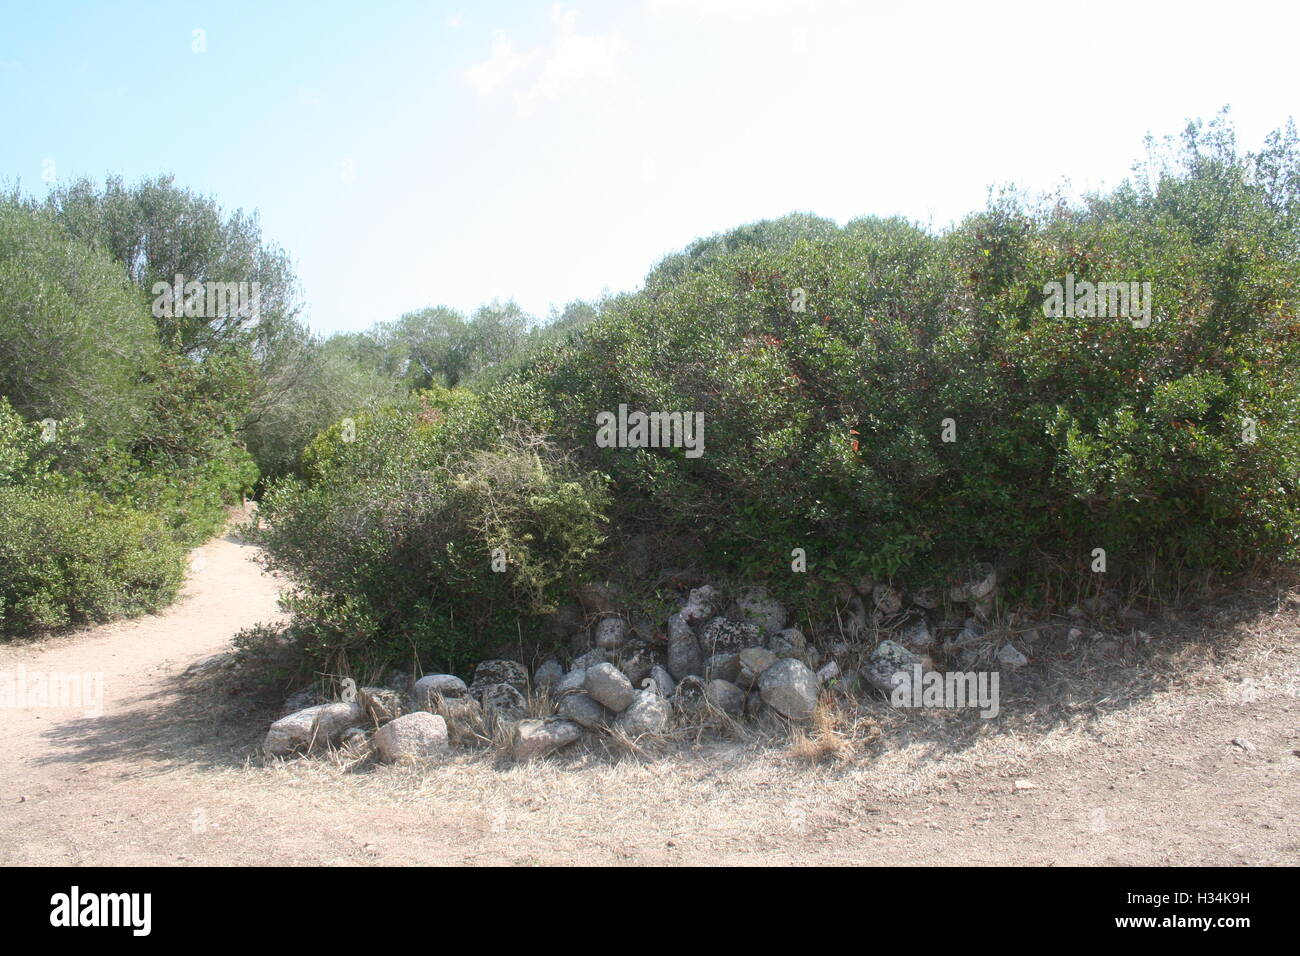 Bushes surrounded by rocks and a dirt path - Stock Image